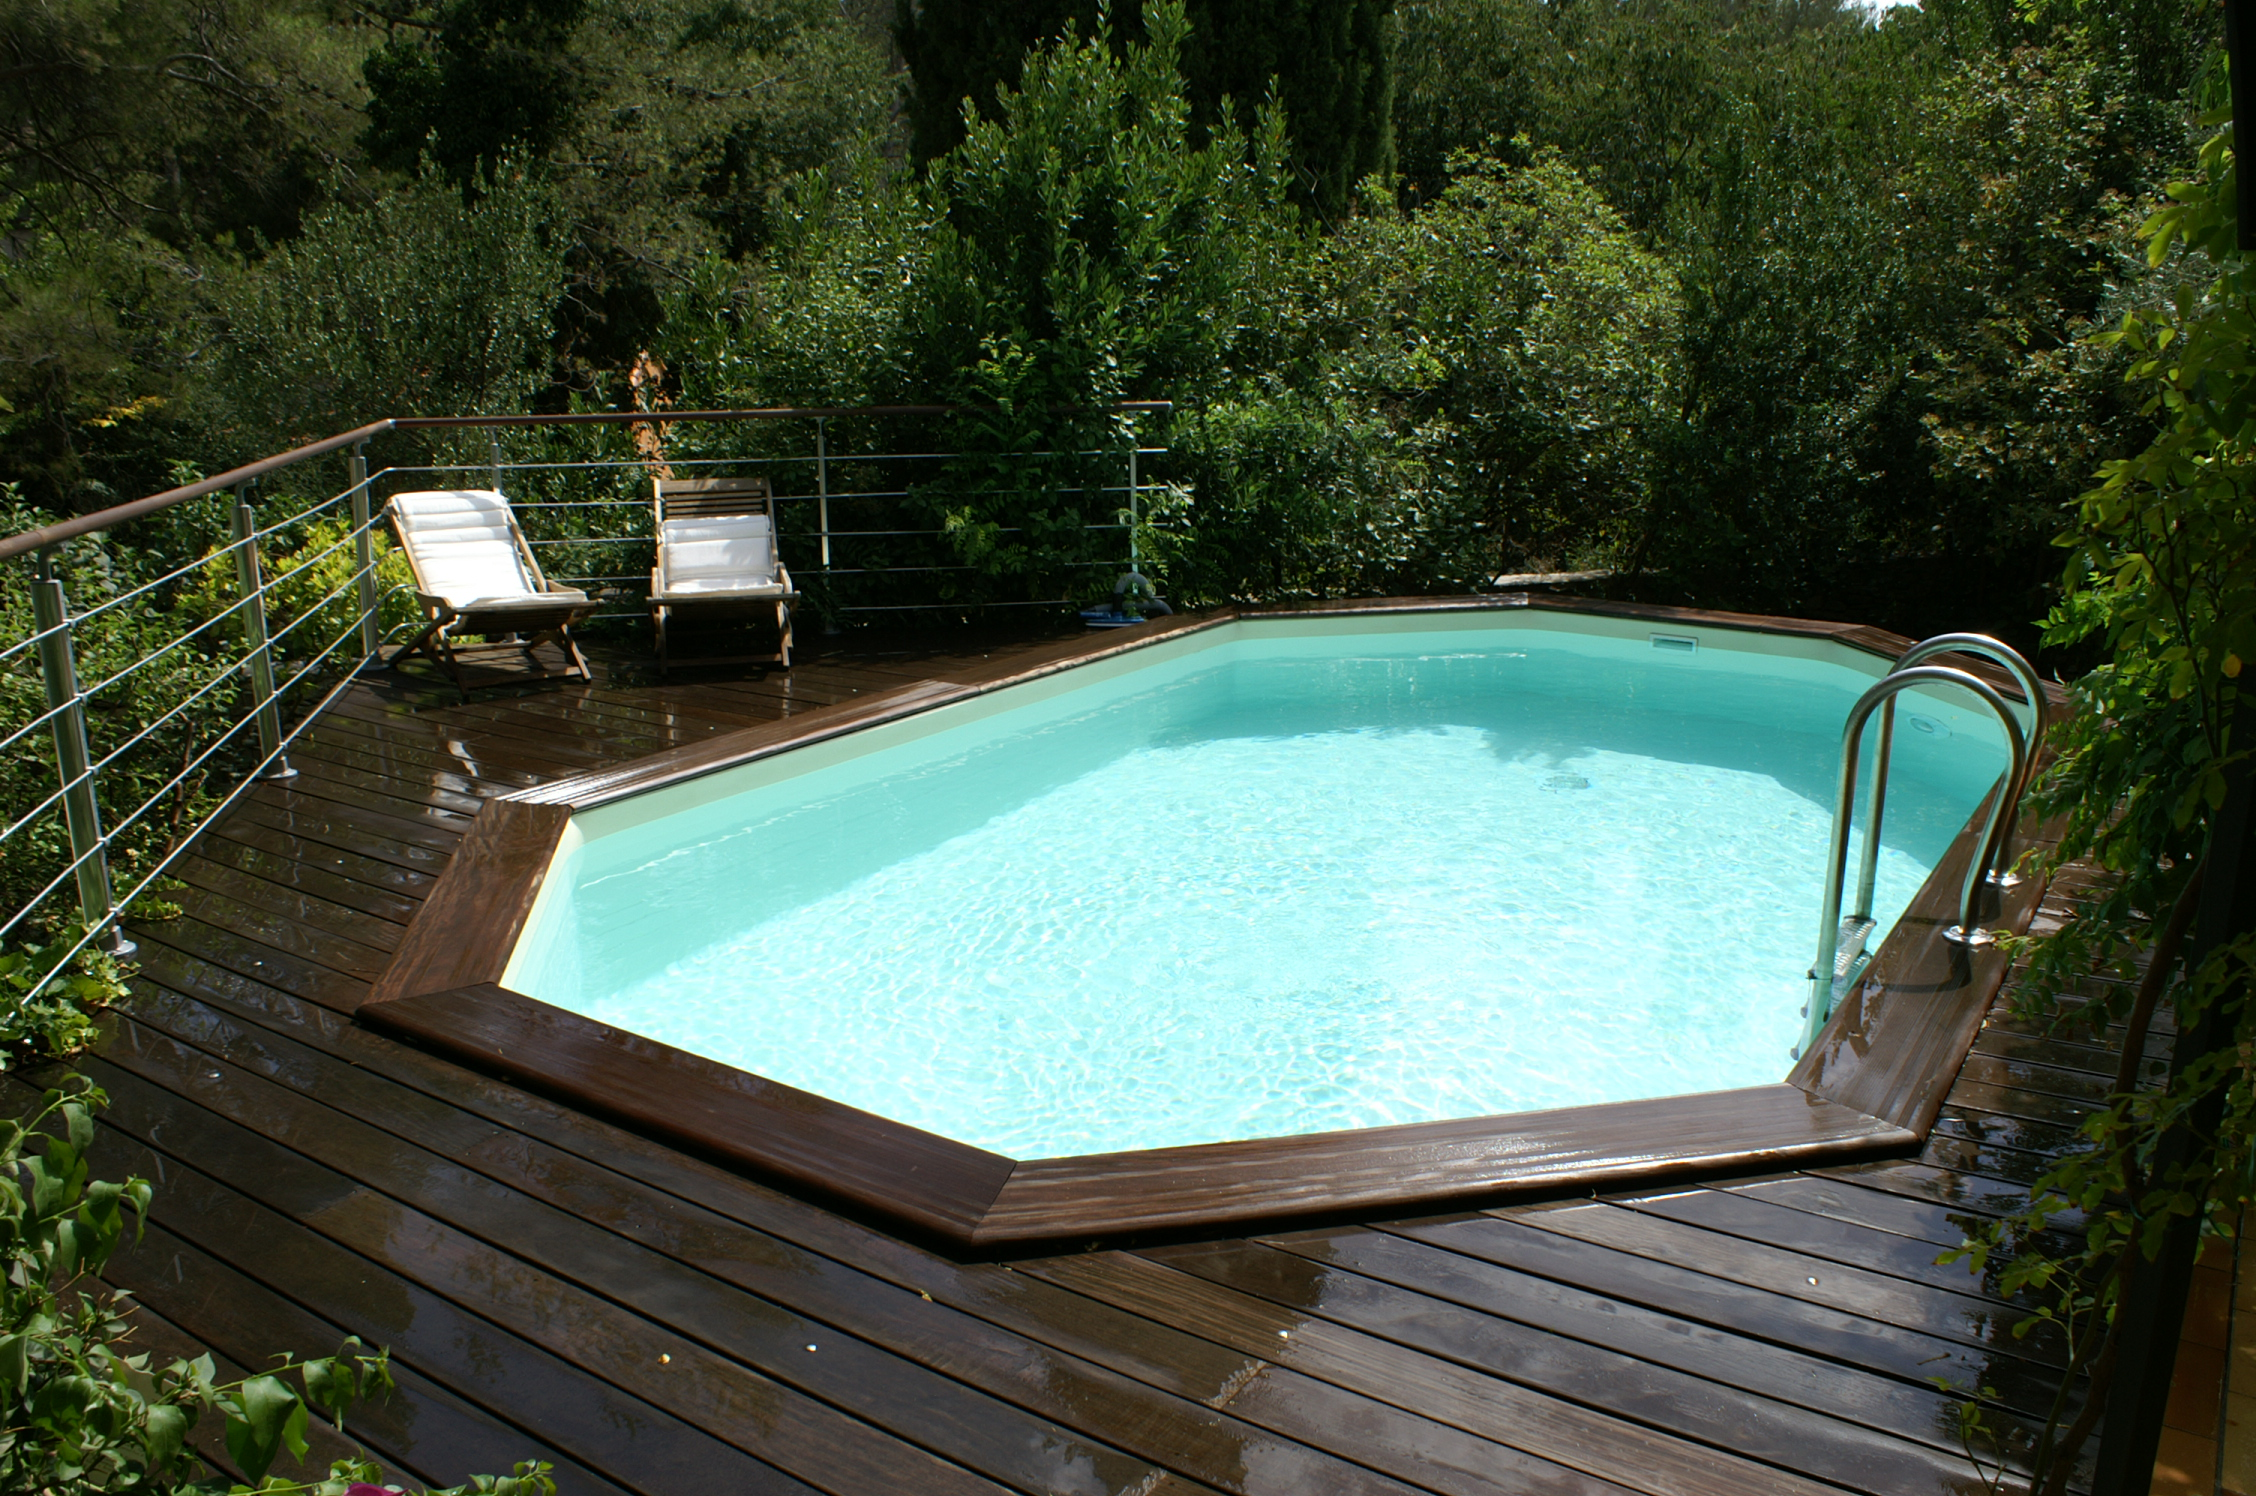 Construction piscines nimes gepad piscines et spa 30000 for Piscine hors sol perpignan